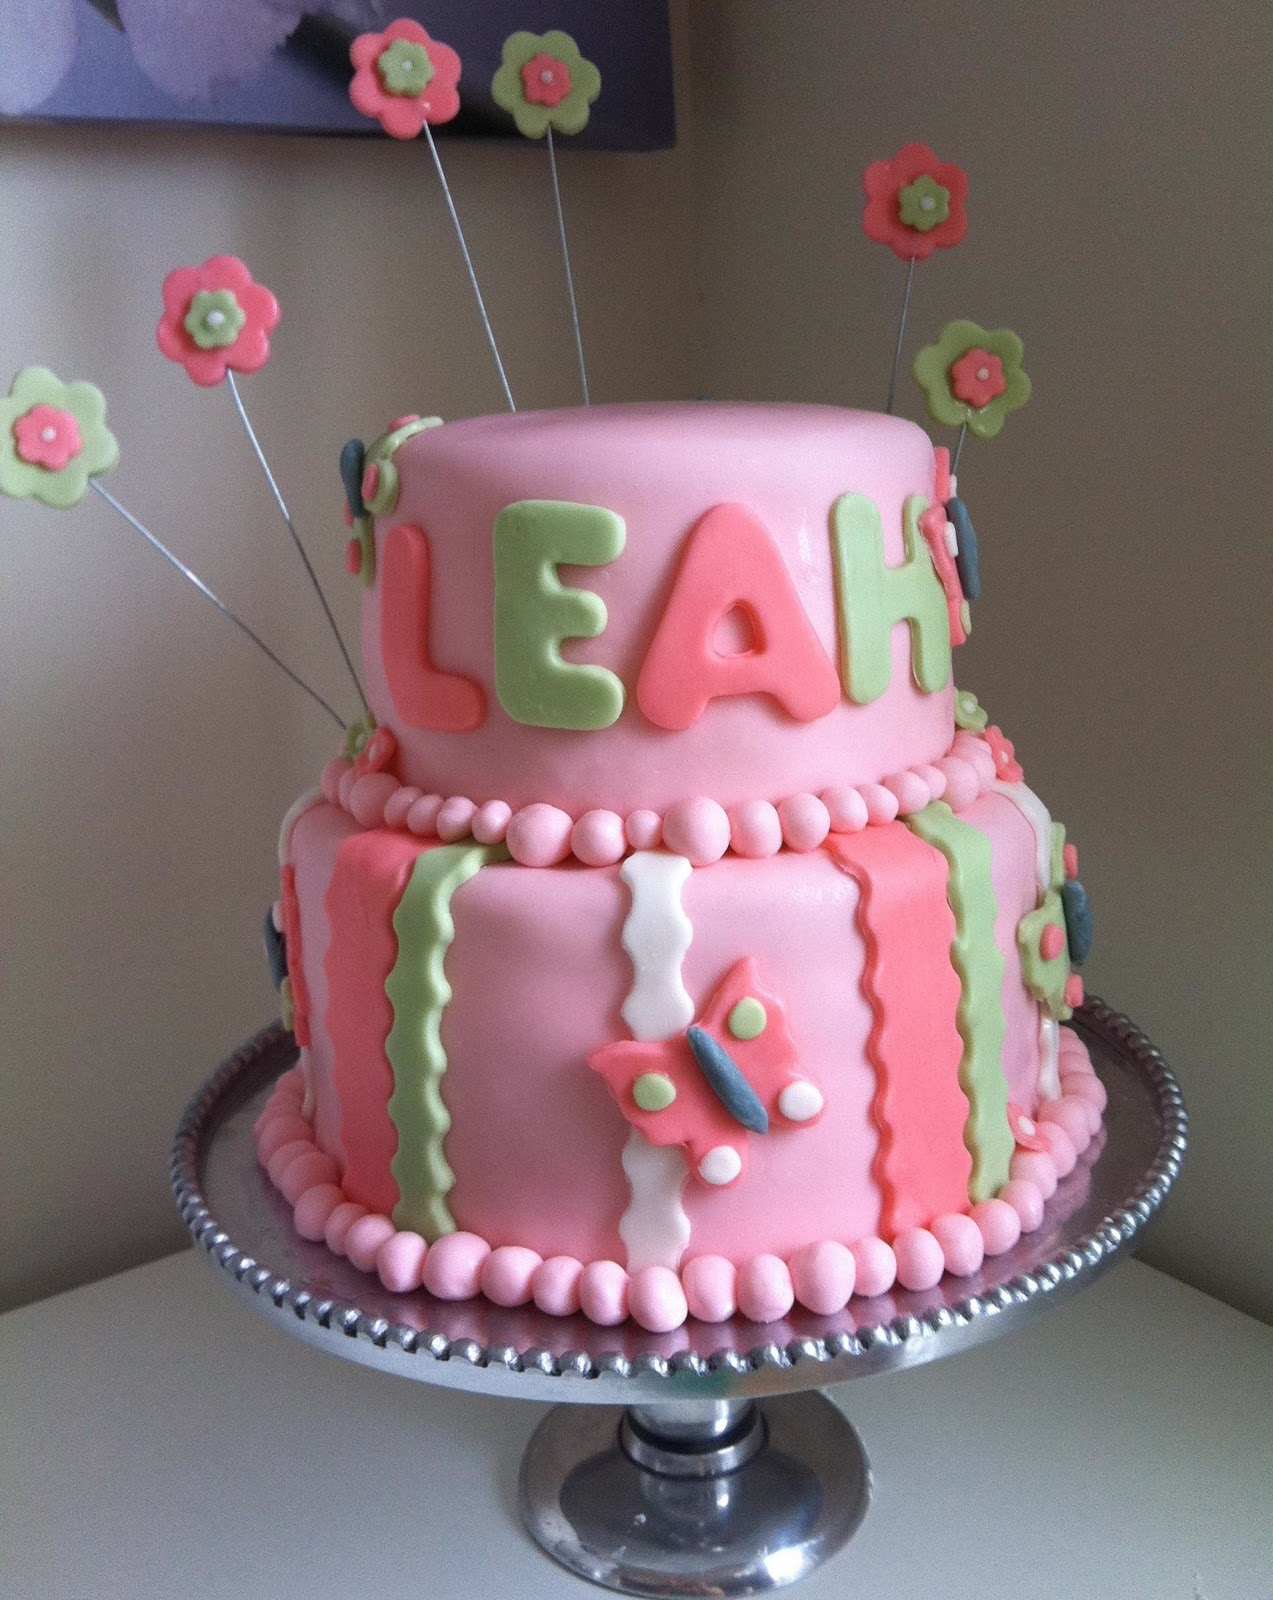 Birthday Cakes for Girls: Make Surprise with Adorable Design